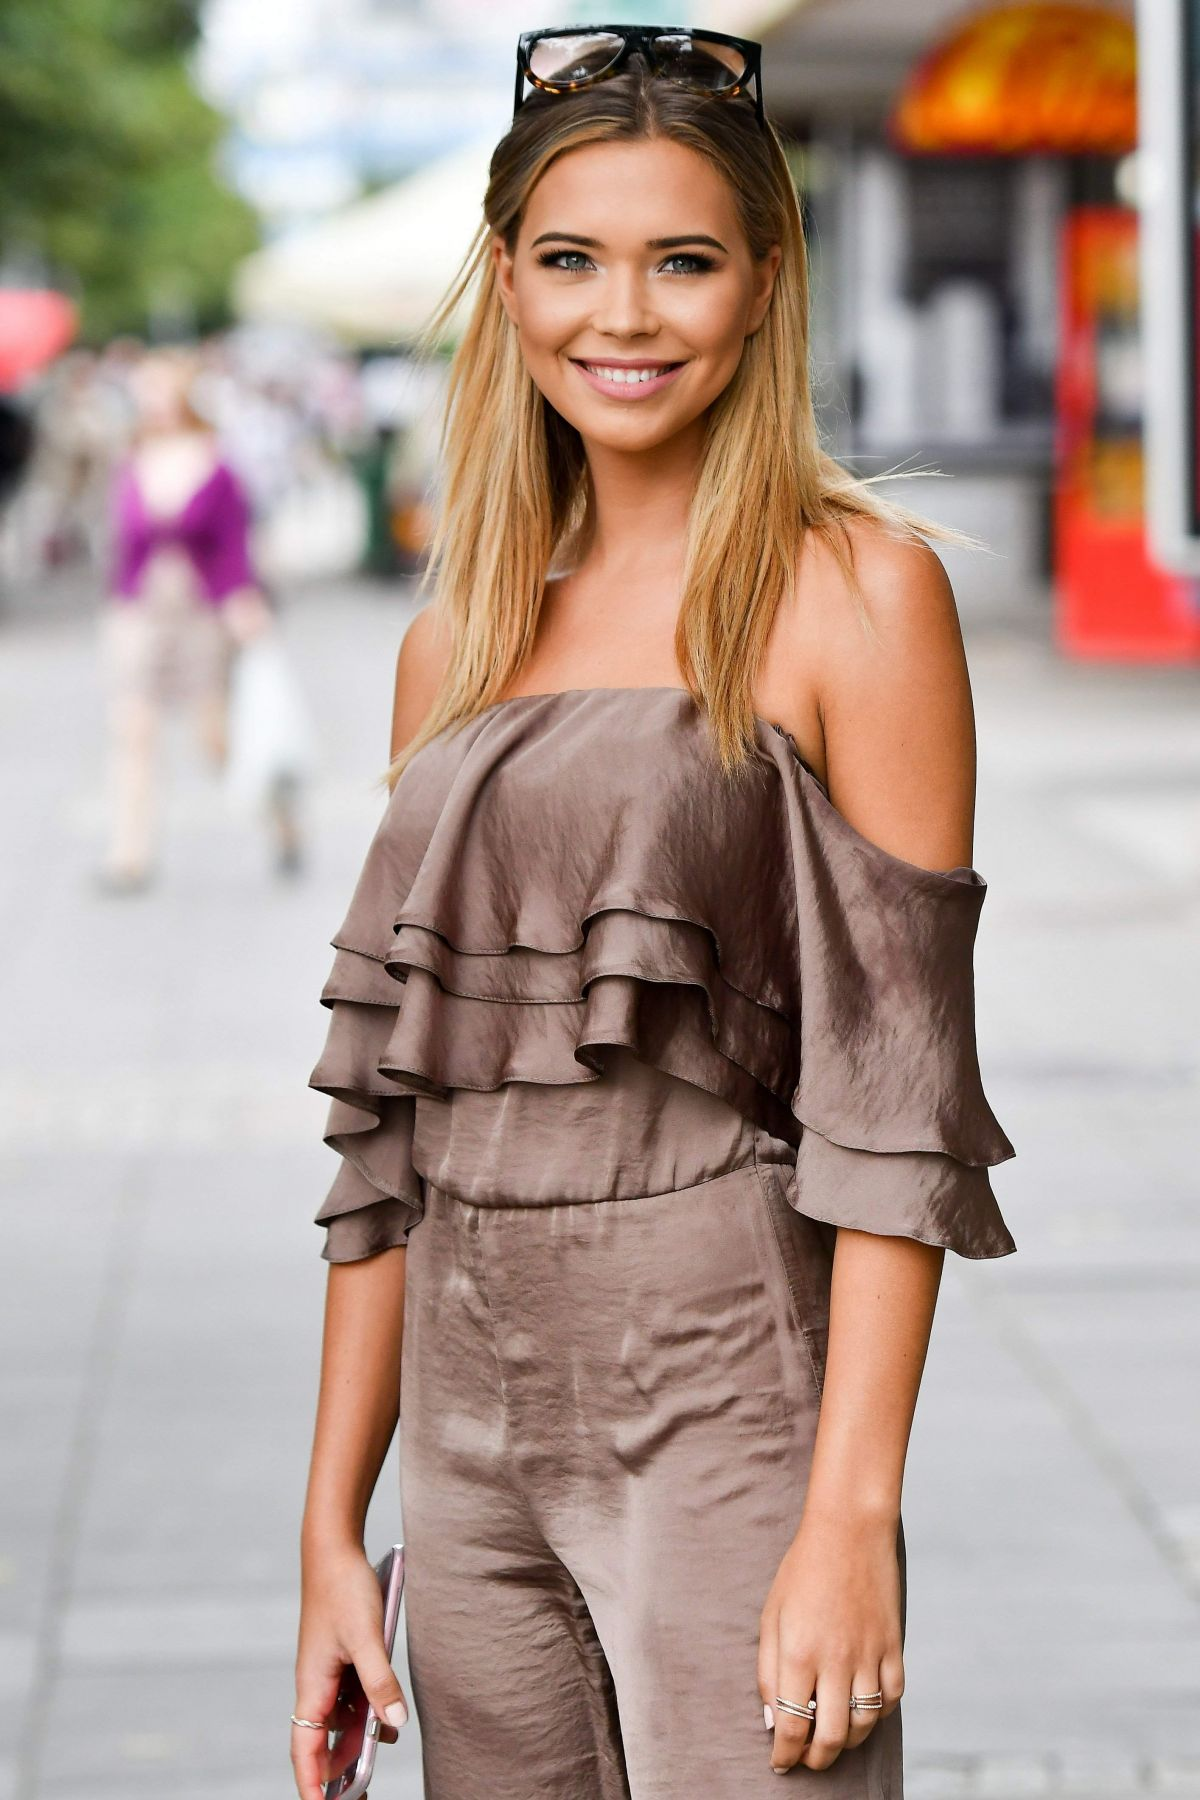 SANDRA KUBICKA Heading to TVN in Warsaw 07/08/2017